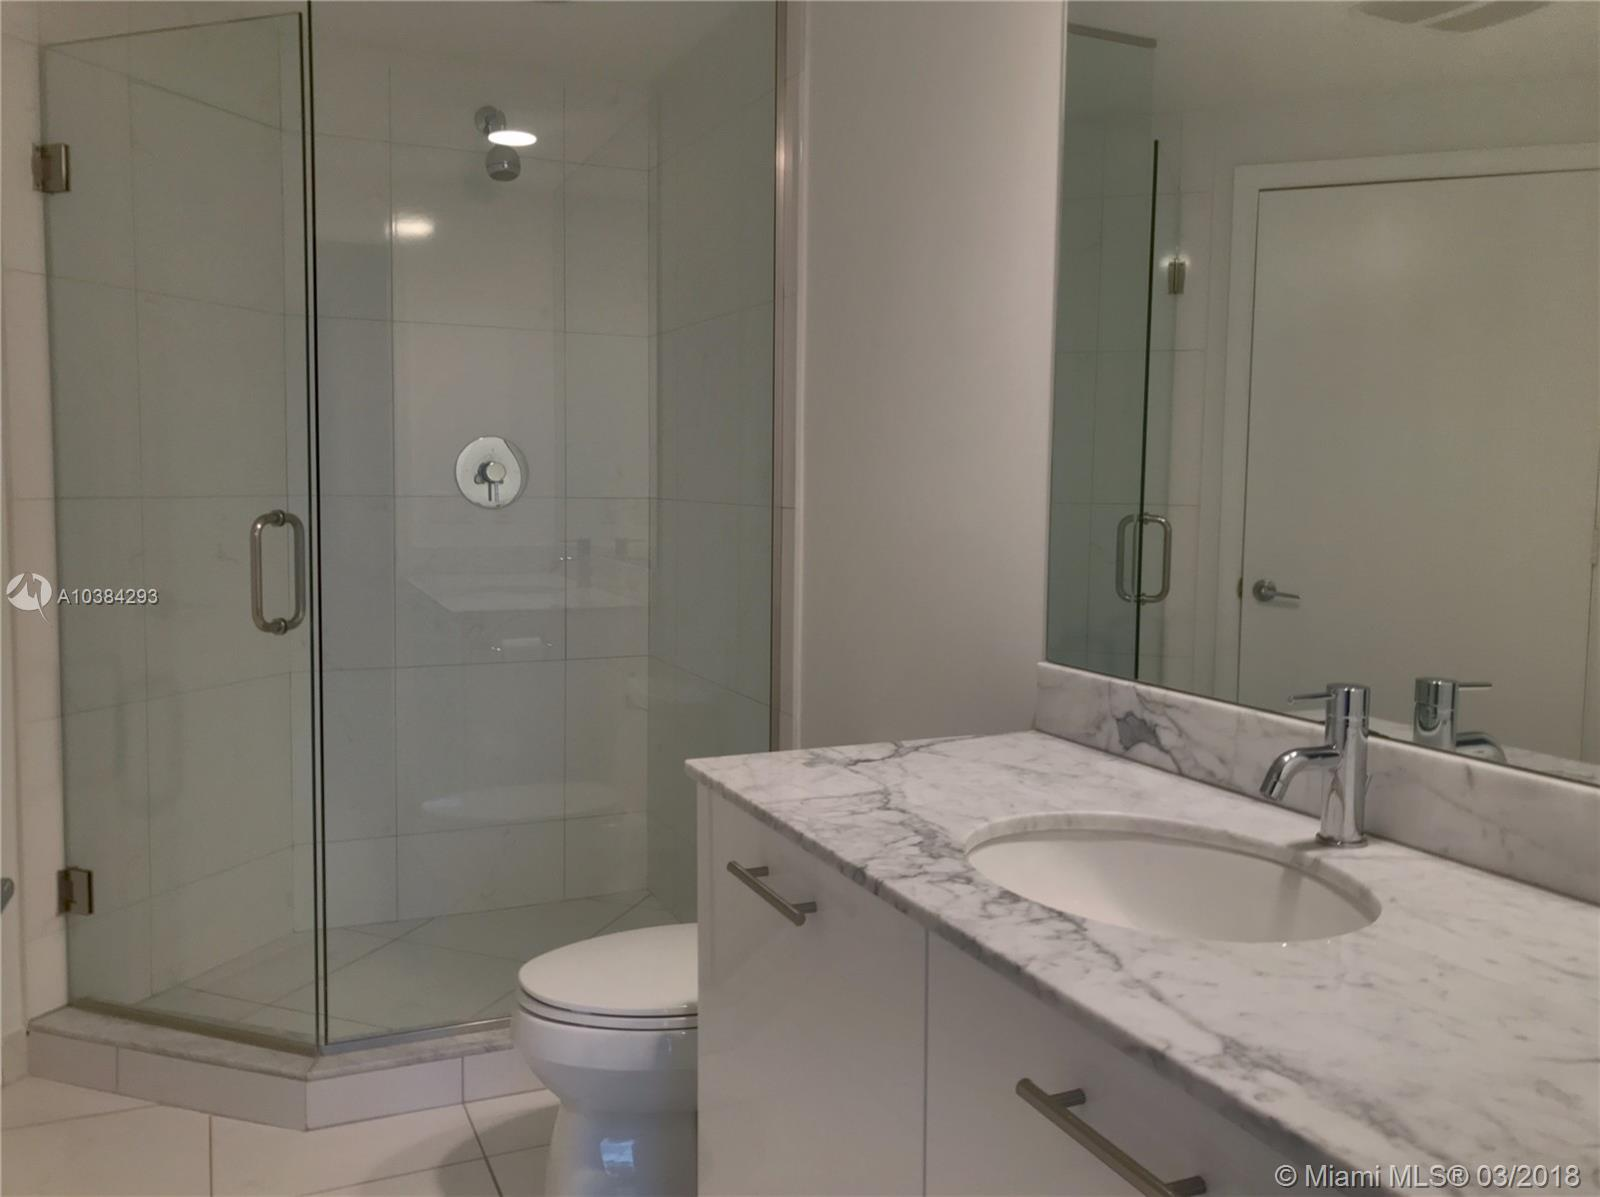 500 Brickell Avenue and 55 SE 6 Street, Miami, FL 33131, 500 Brickell #2502, Brickell, Miami A10384293 image #13